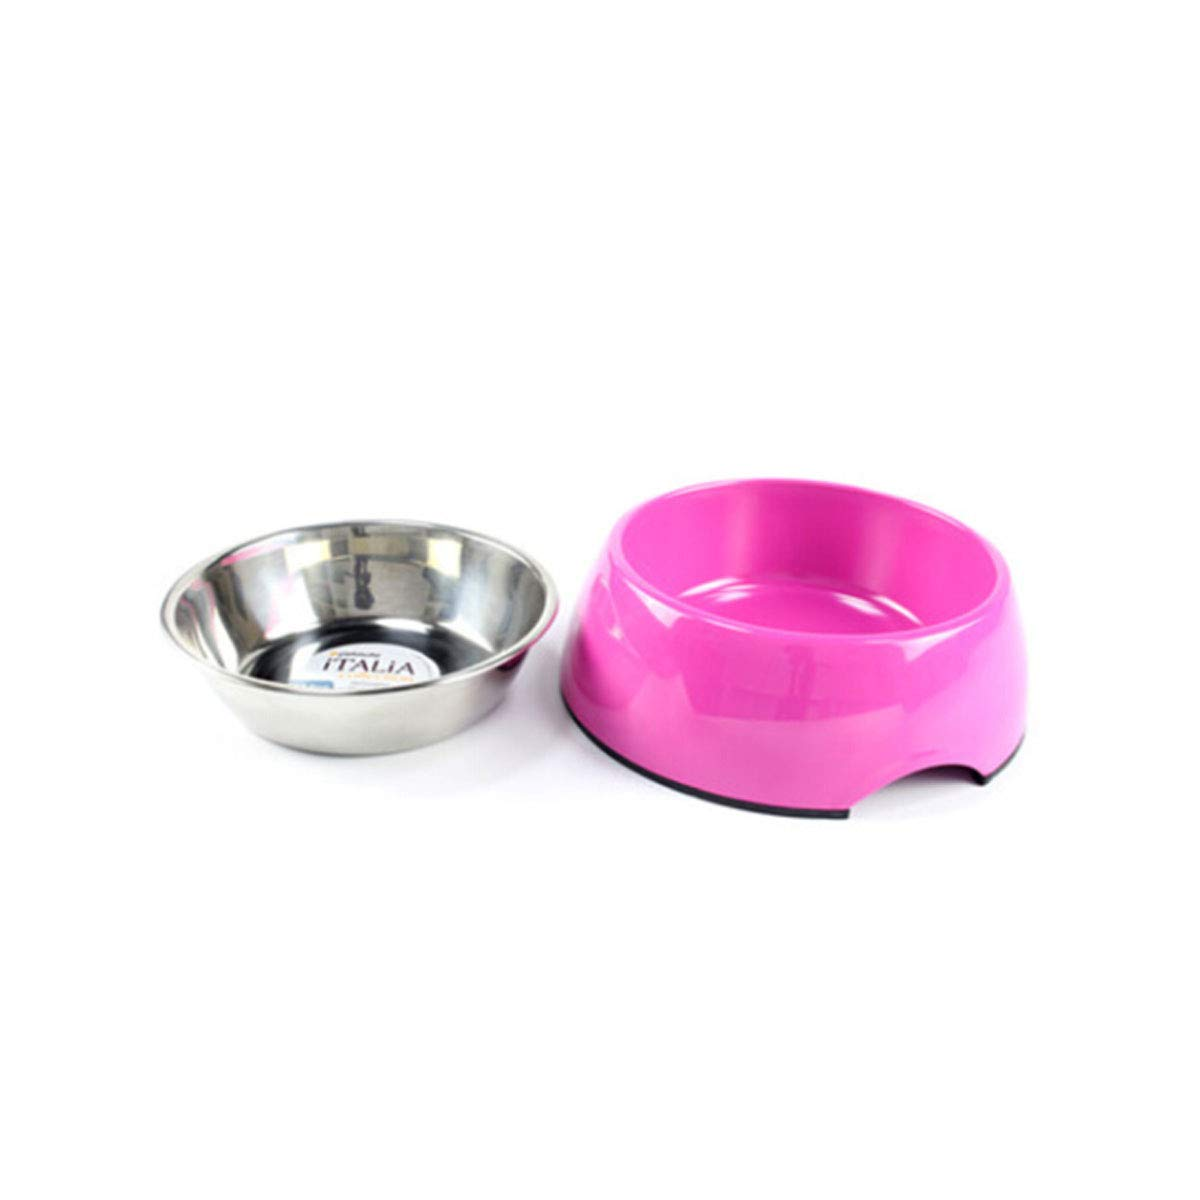 bluee S bluee S Xionghaizi Dog Food Bowl, Pet Food Bowl, Cat Bowl, Dog Bowl (color   bluee, Size   S)